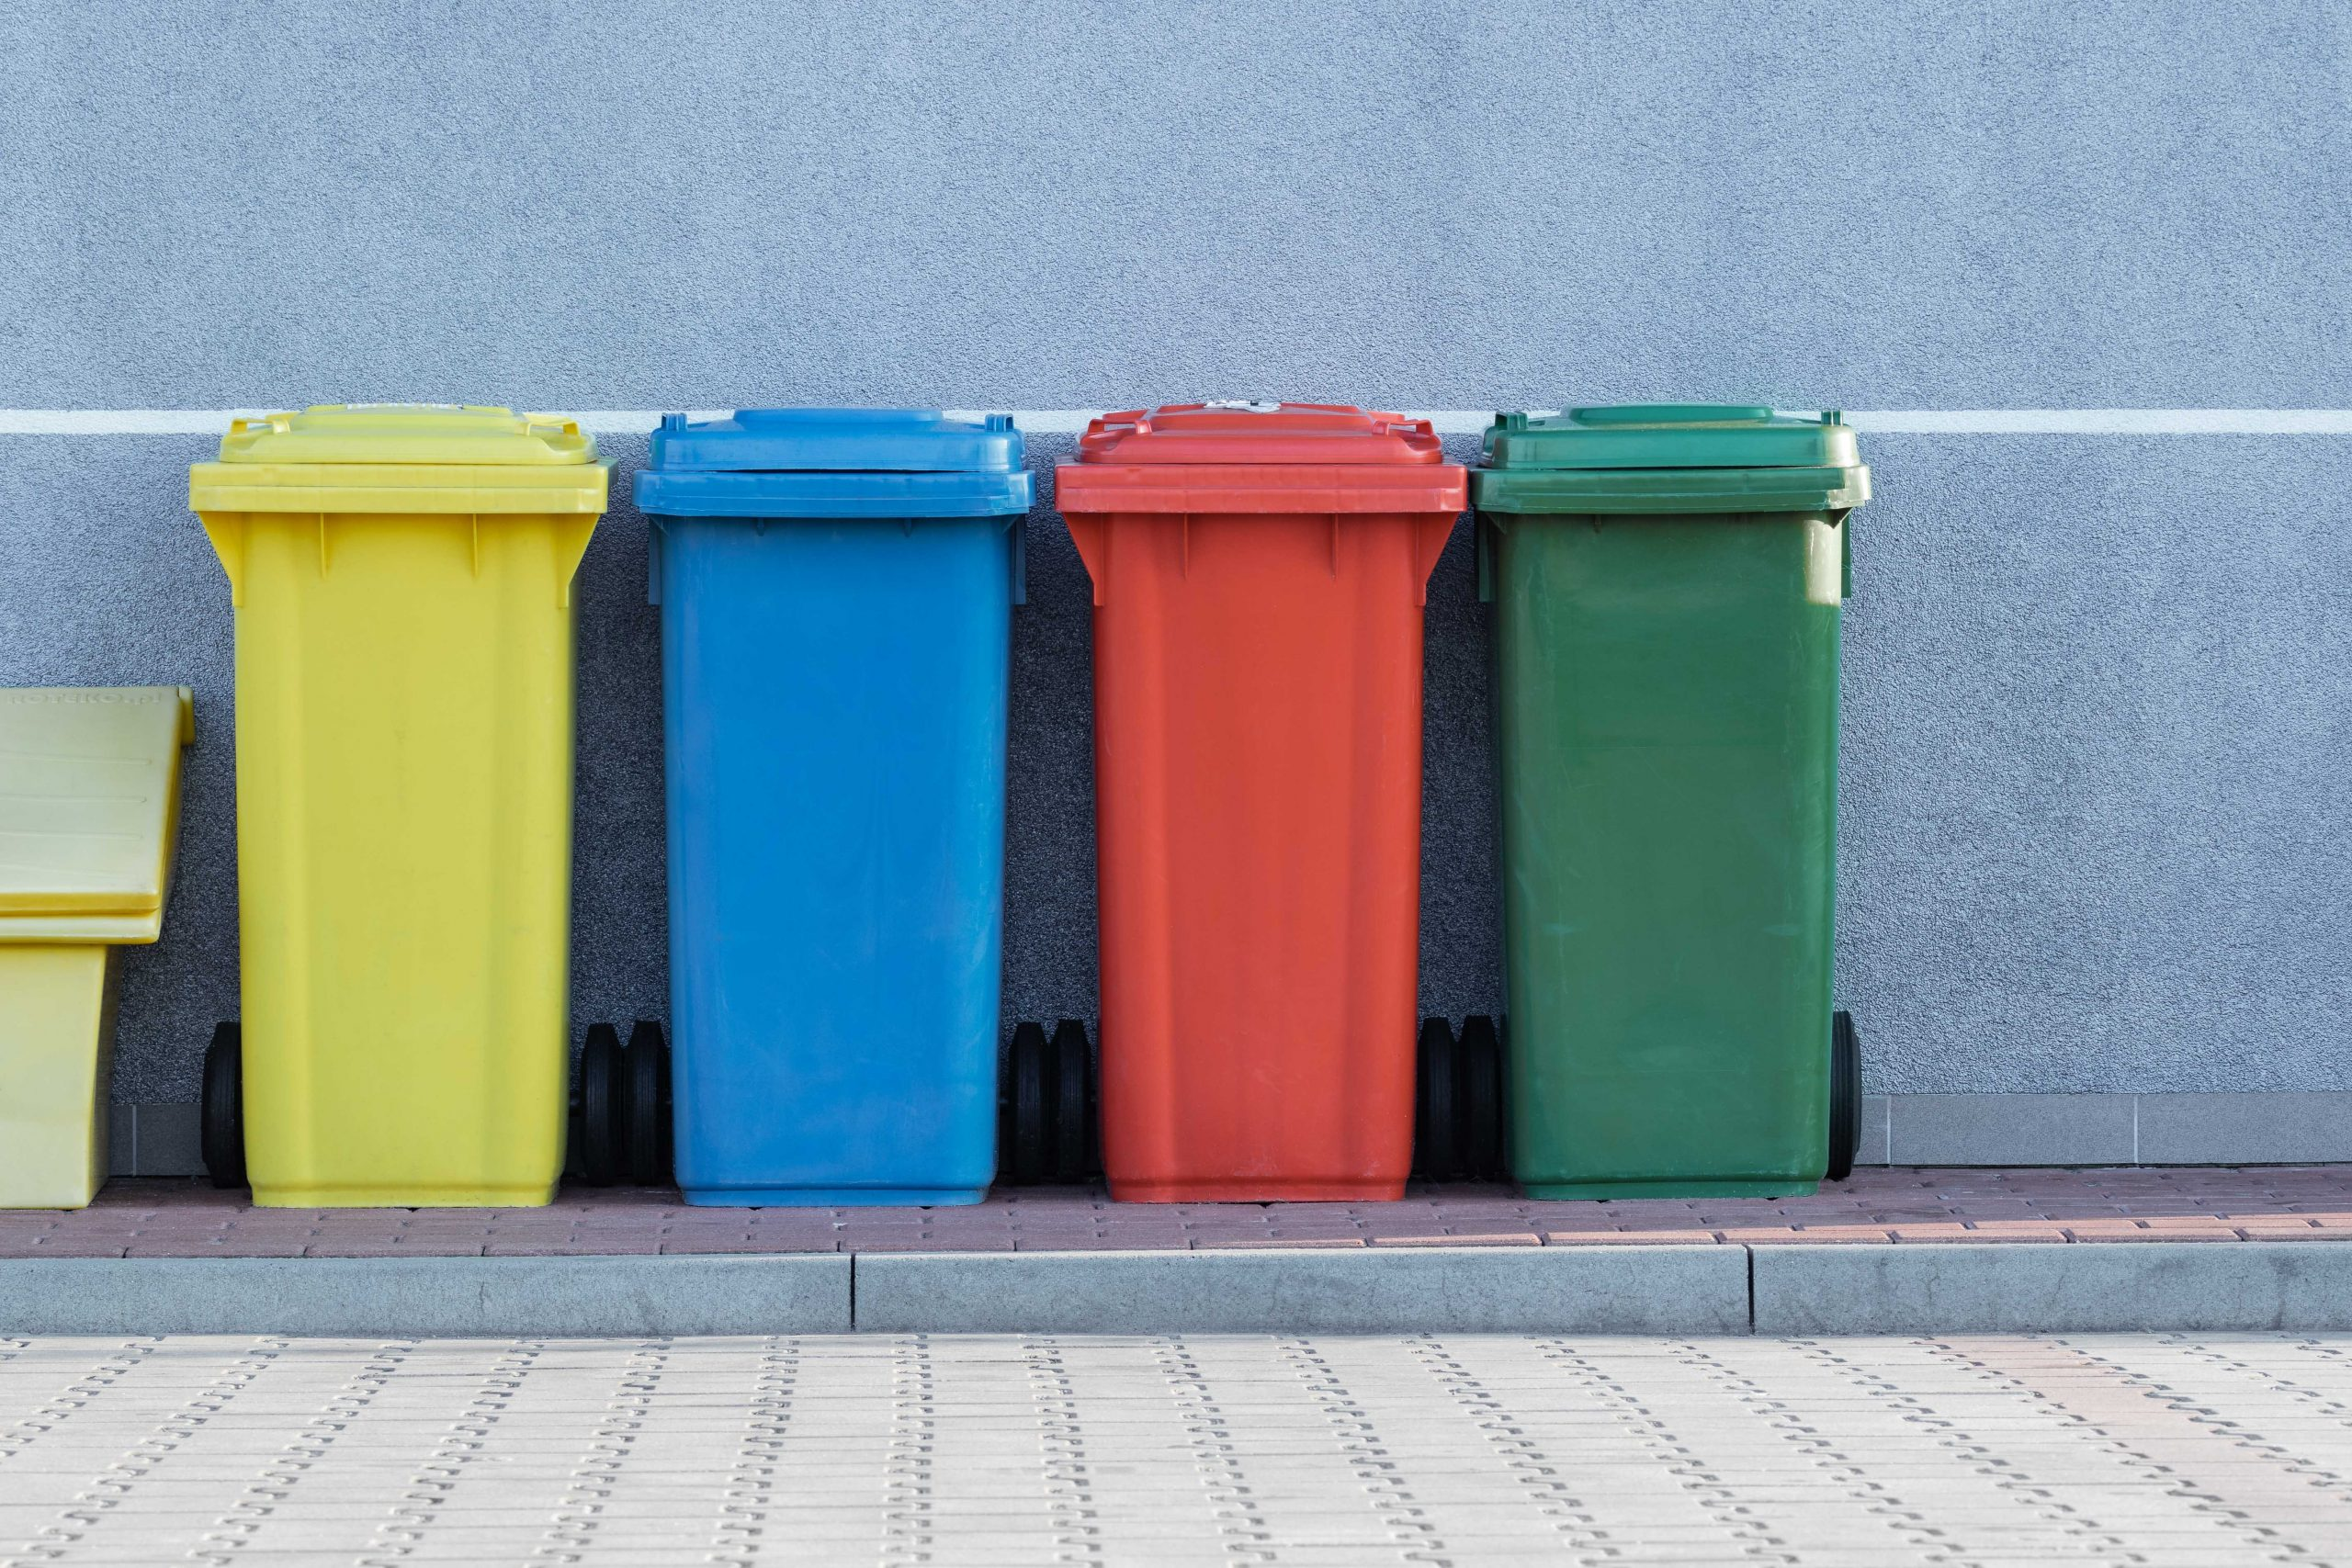 yellow, blue, red and green waste bins lined up against a wall